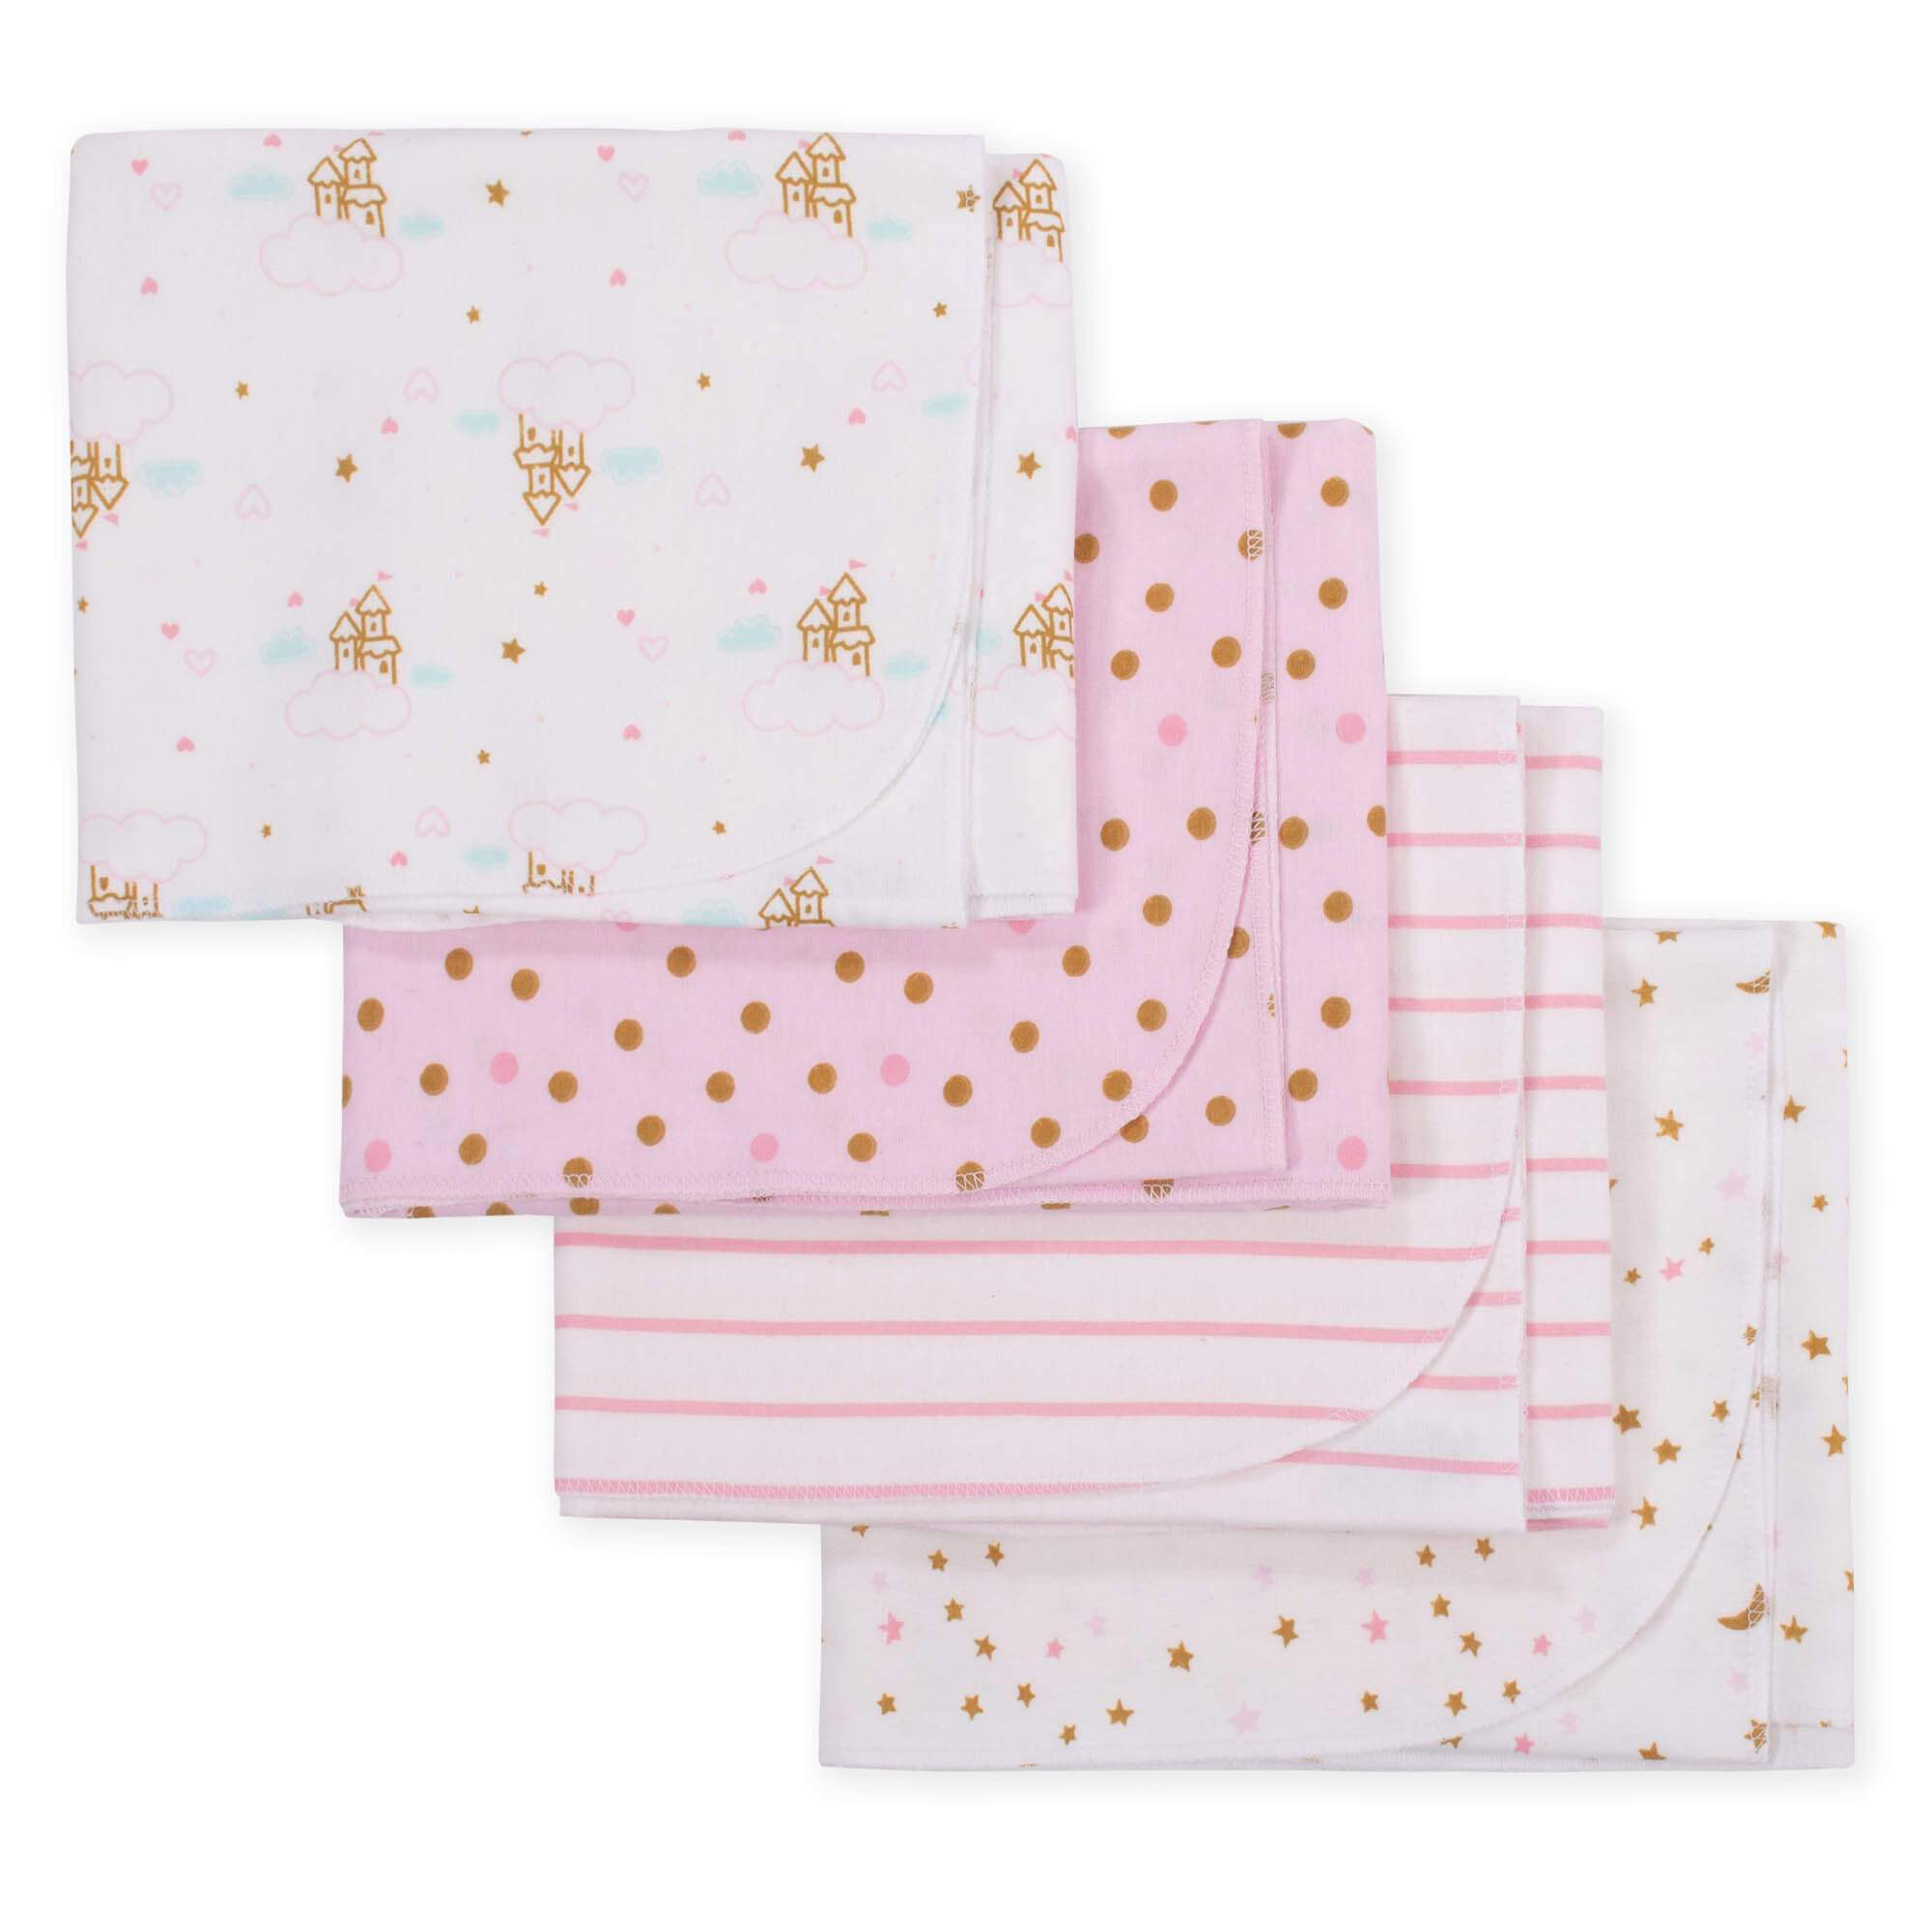 4-Pack Girls Princess Castle Flannel Receiving Blankets-Gerber Childrenswear